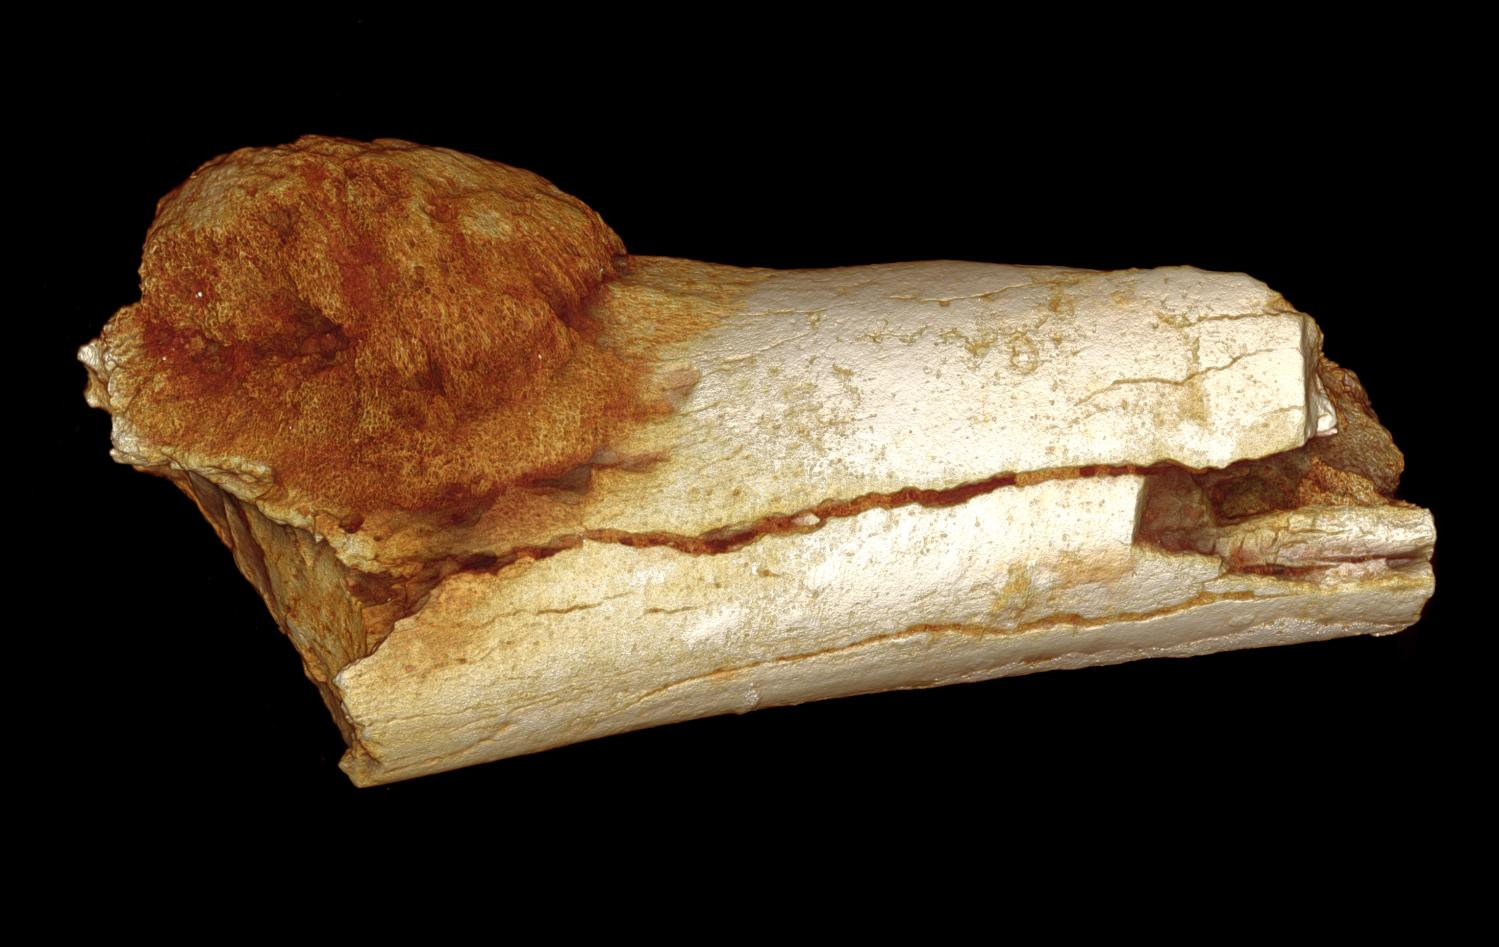 Earliest case of cancer found in 1.7-million-year-old fossil